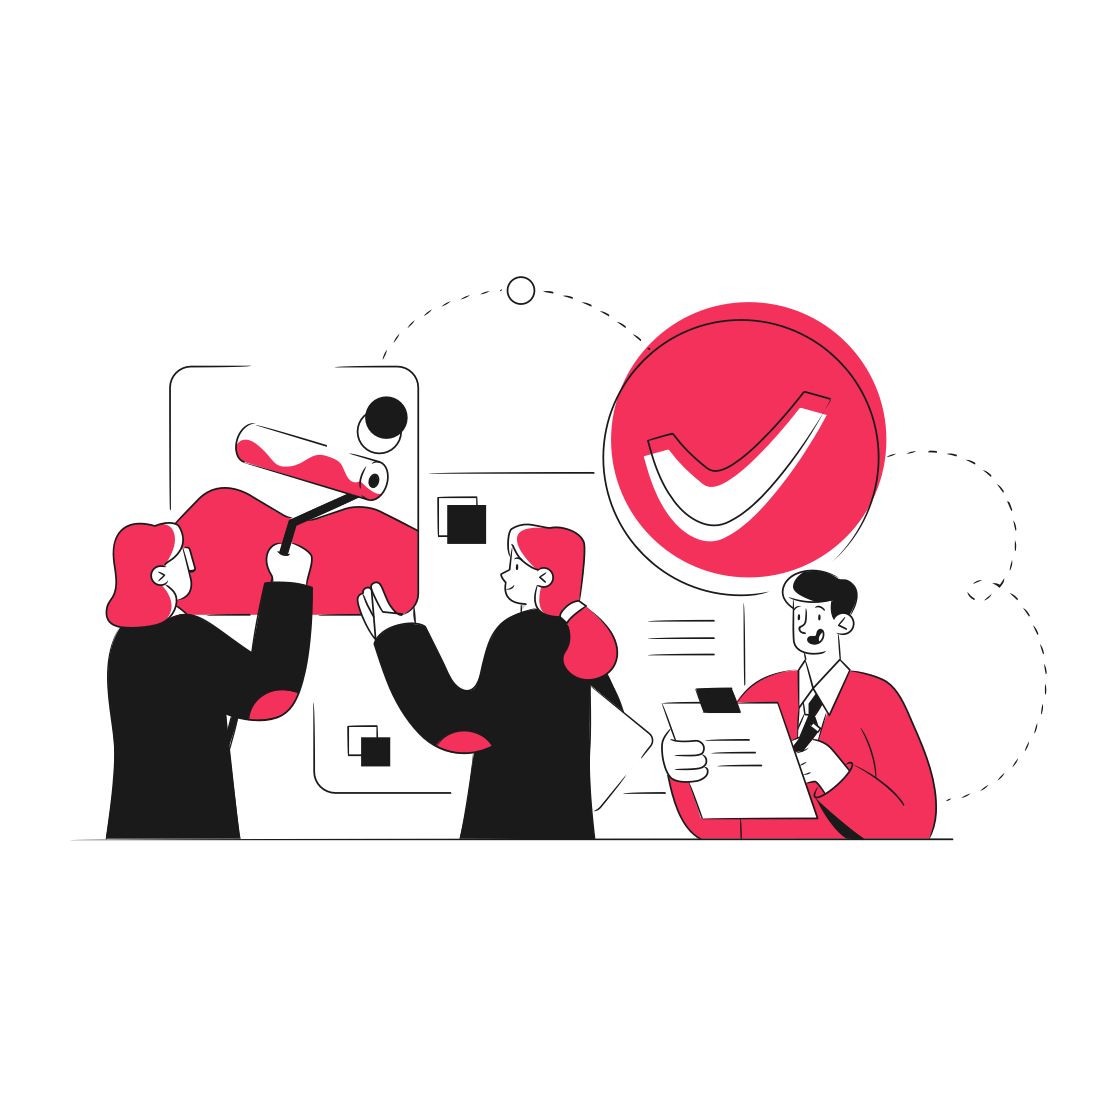 Virality workflow: Content approval